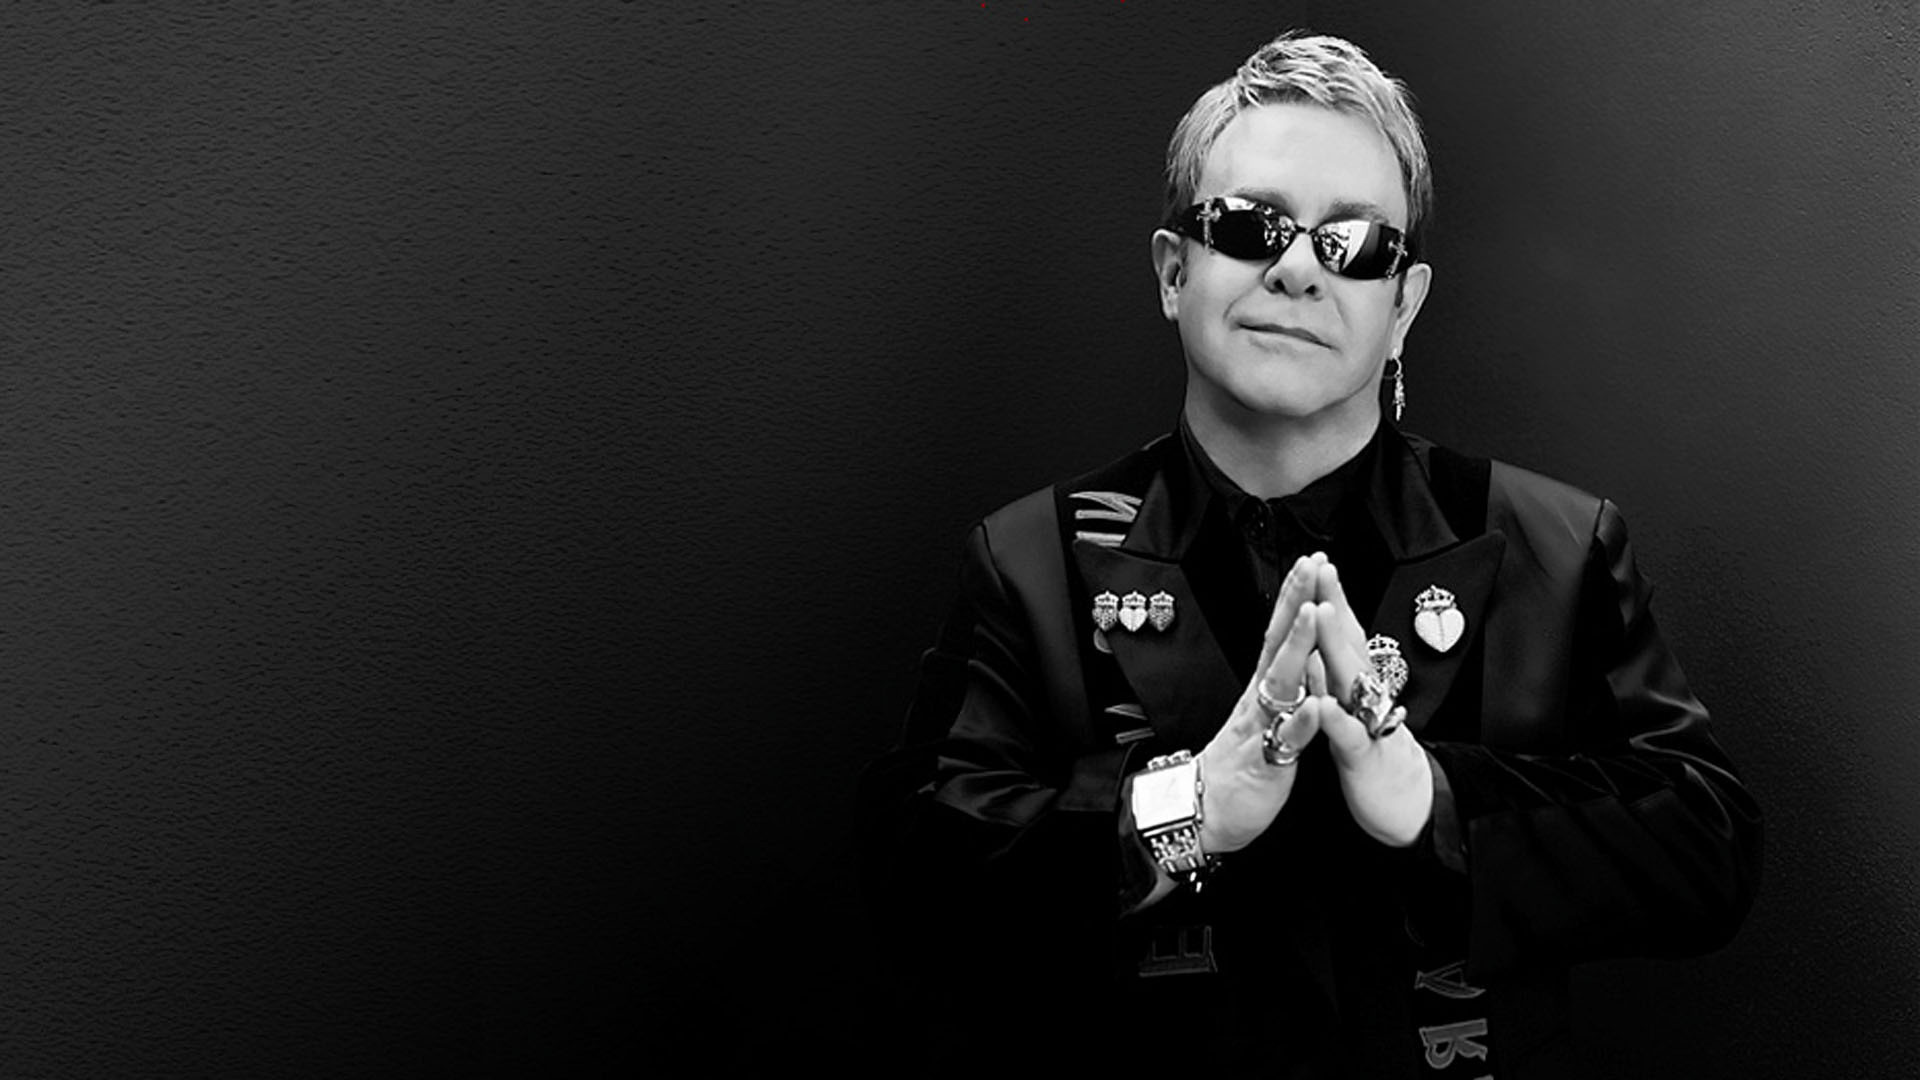 elton john wallpaper Gallery 73 images 1920x1080